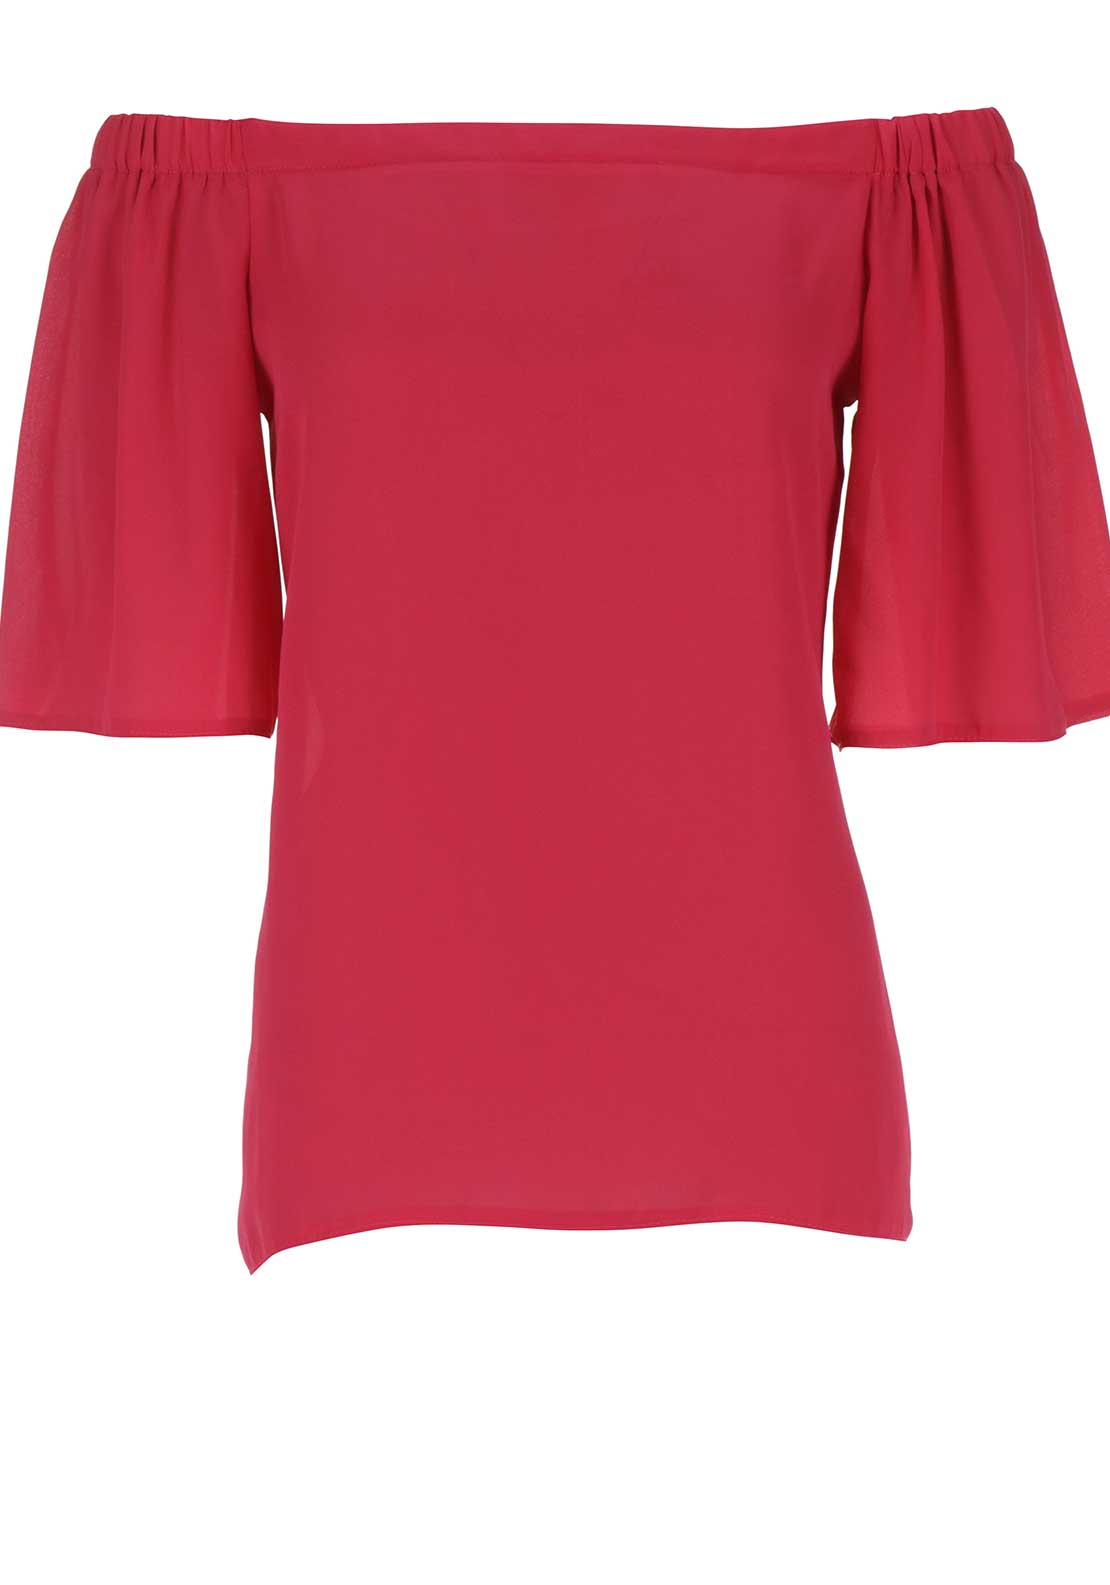 Boutique Off The Shoulder Top, Pink